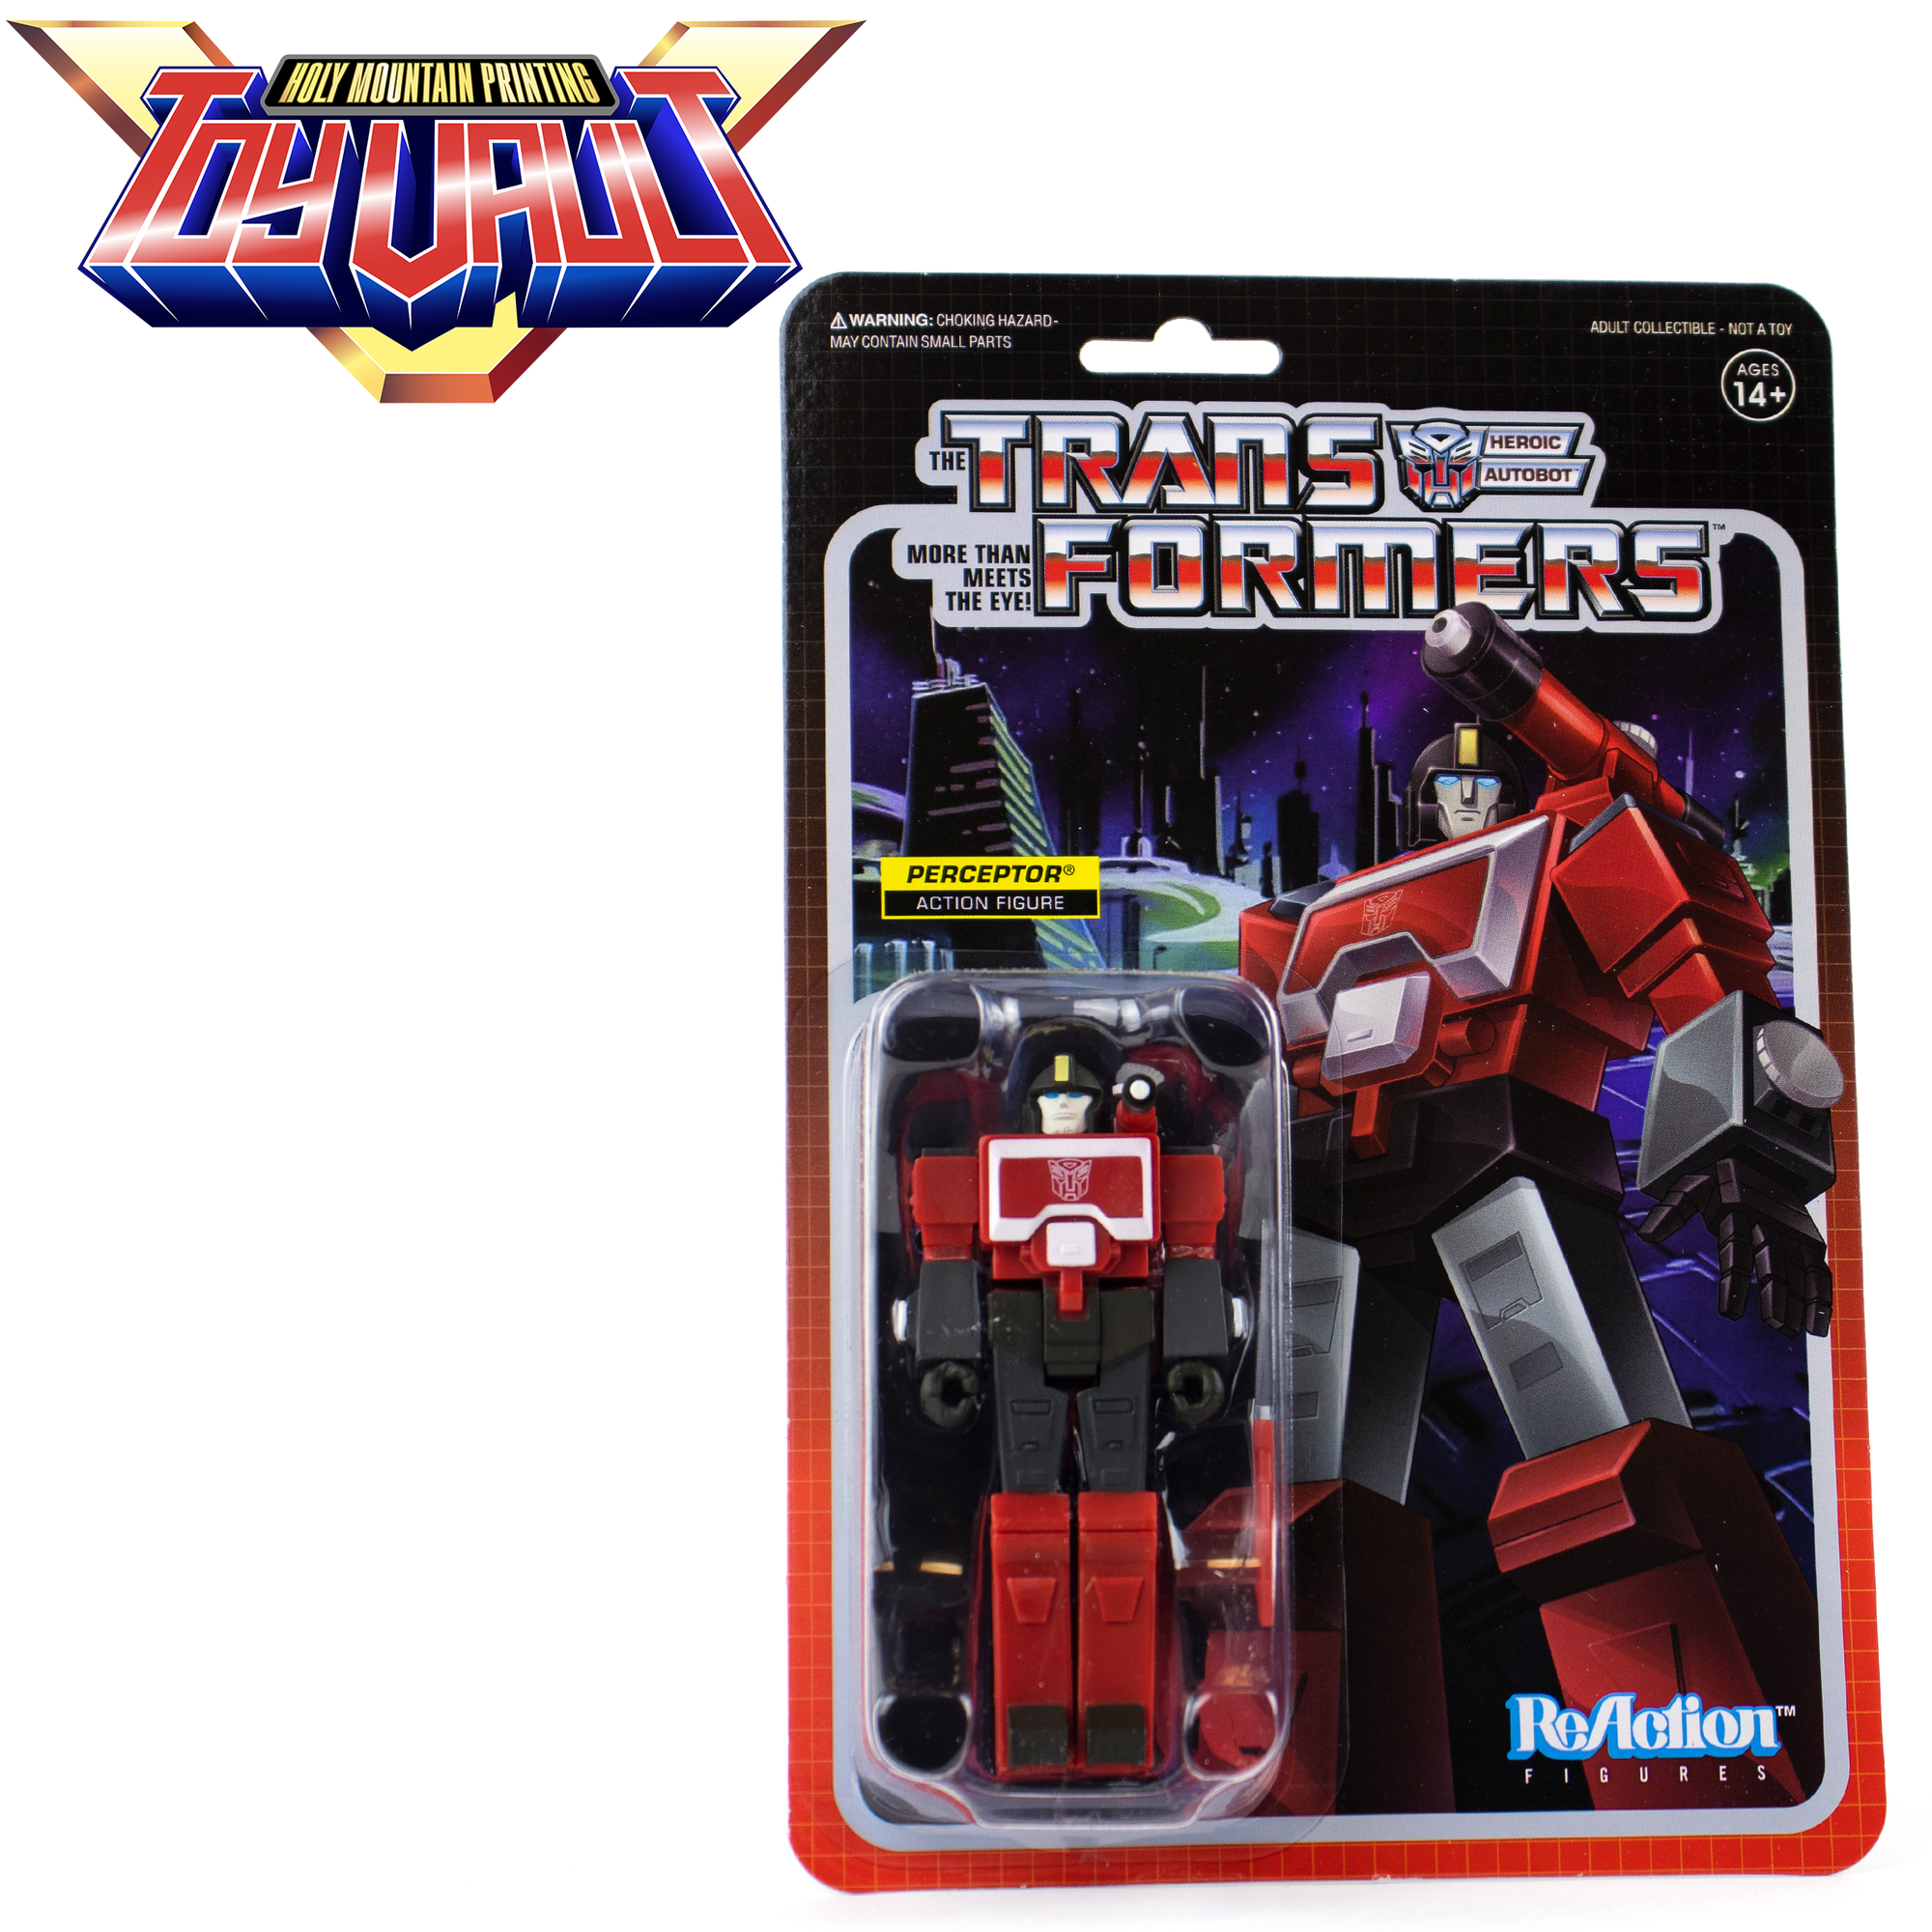 SUPER7 - Transformers ReAction Wave 3 - Perceptor